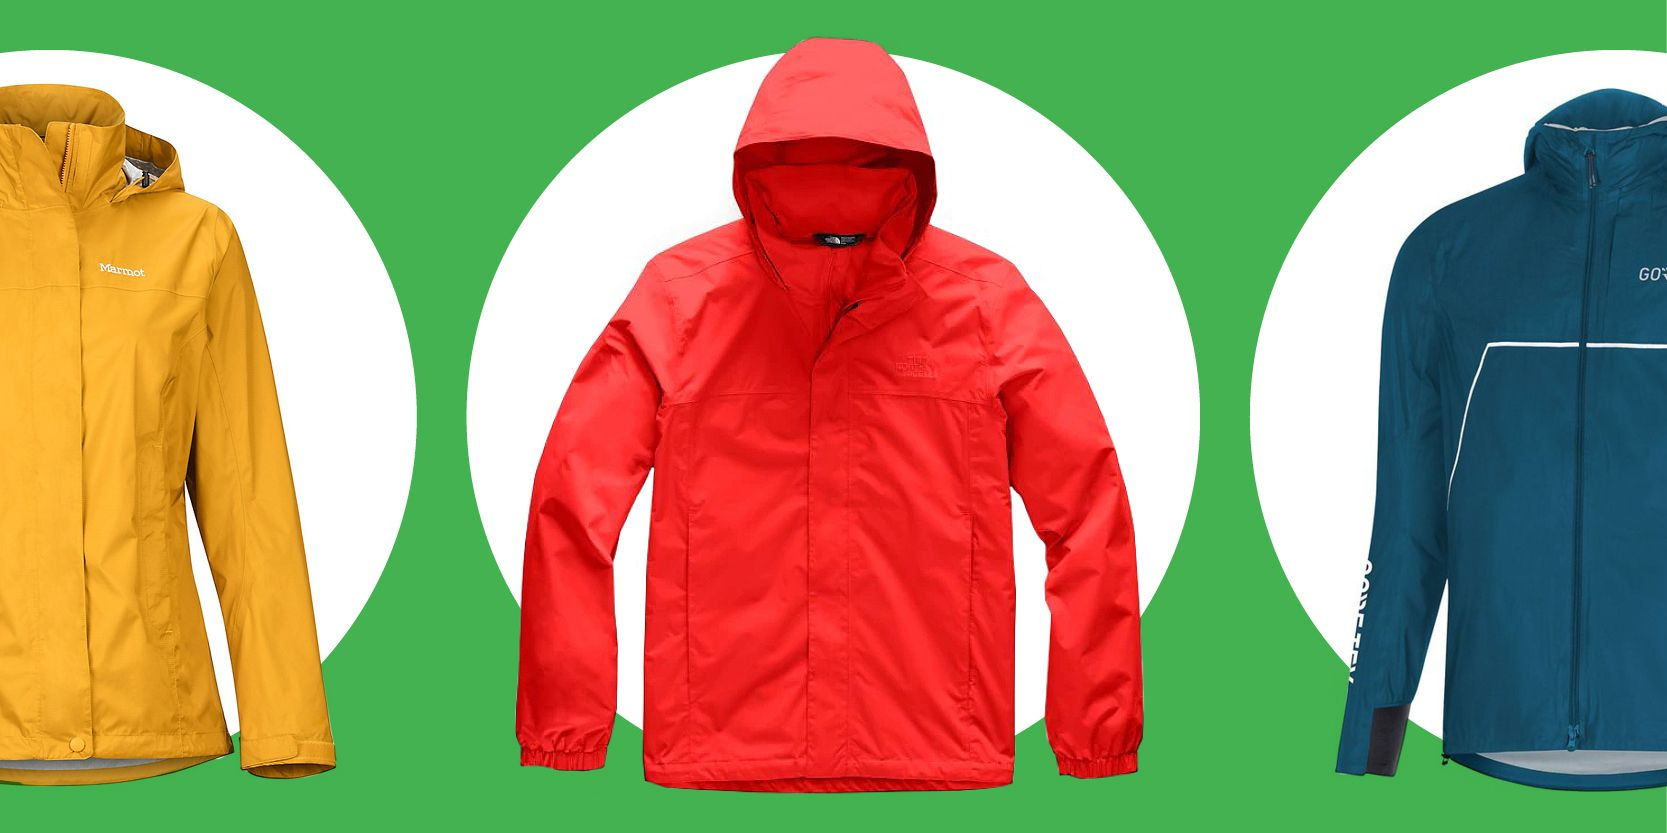 Make the most of rainy days with our 100% waterproof jacket